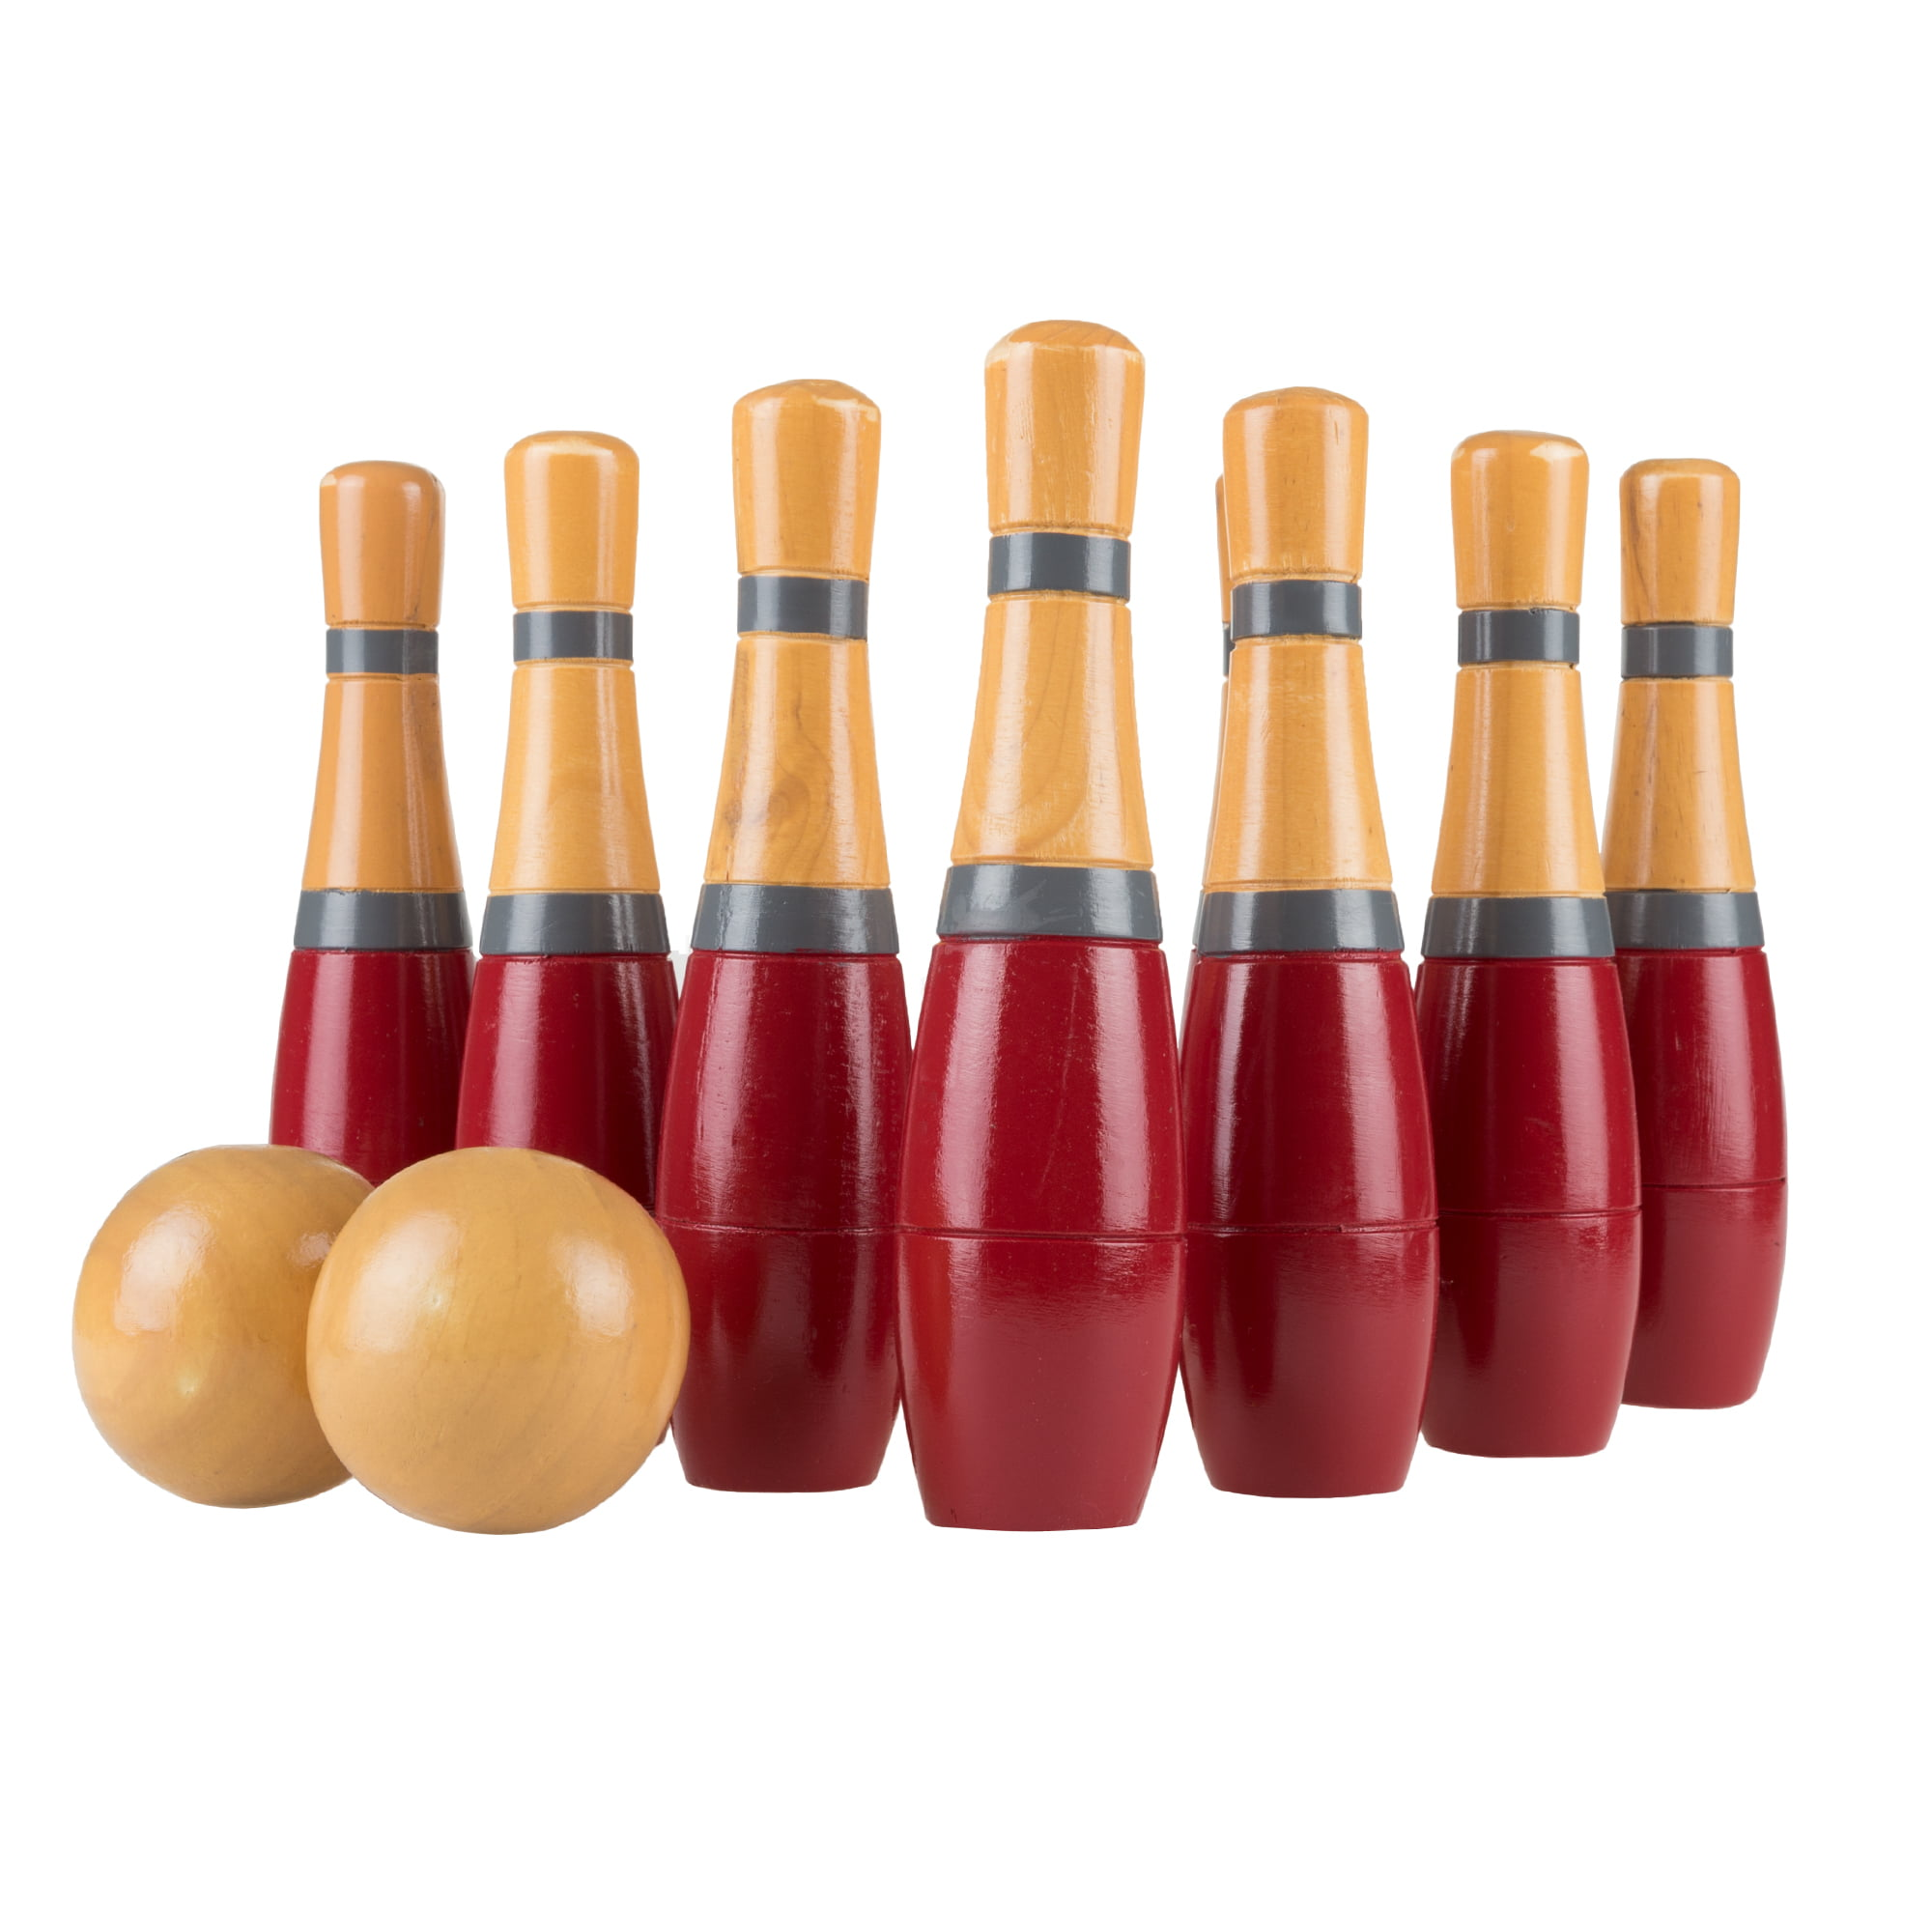 Details about  /Indoor Bowling Game Set Outdoor Games Kids Toddlers Family Play Bowl Pins Ball